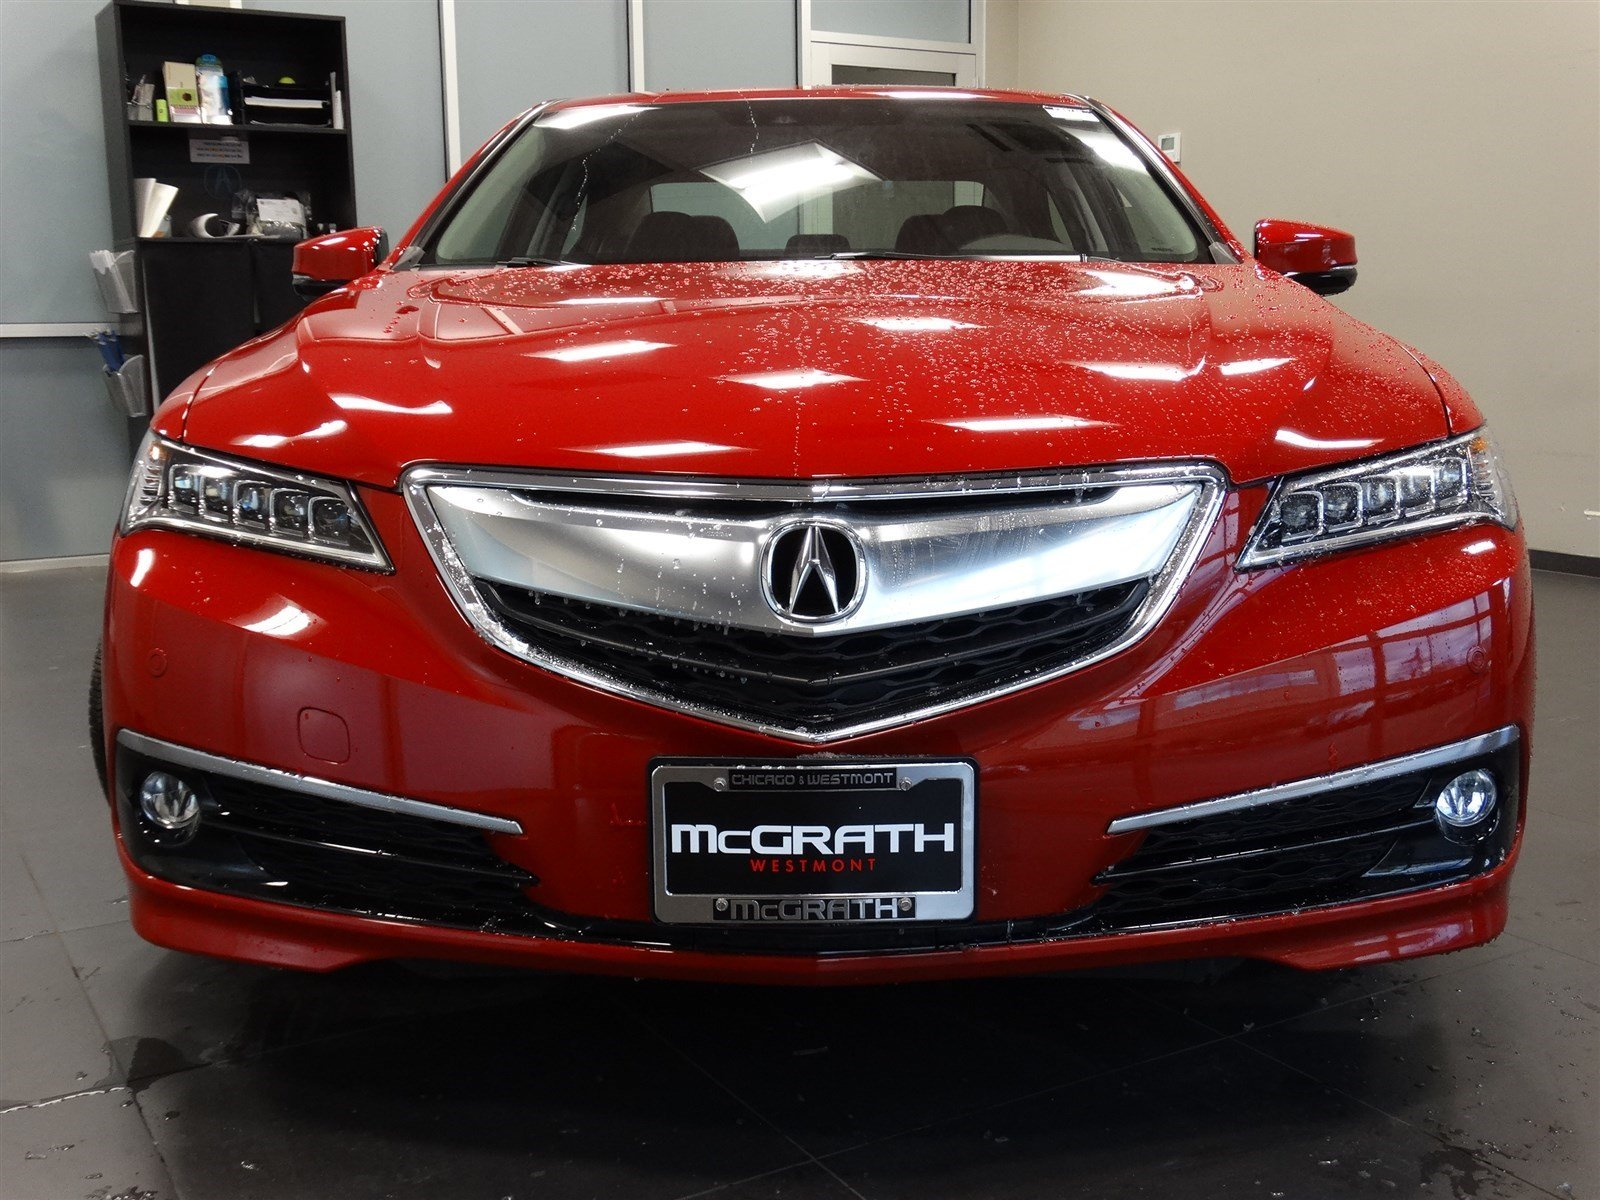 must acura sees that new nsx from vehicles car sale upcoming chicago around globe are and dealers used super for auto includes featured annual at the show cars